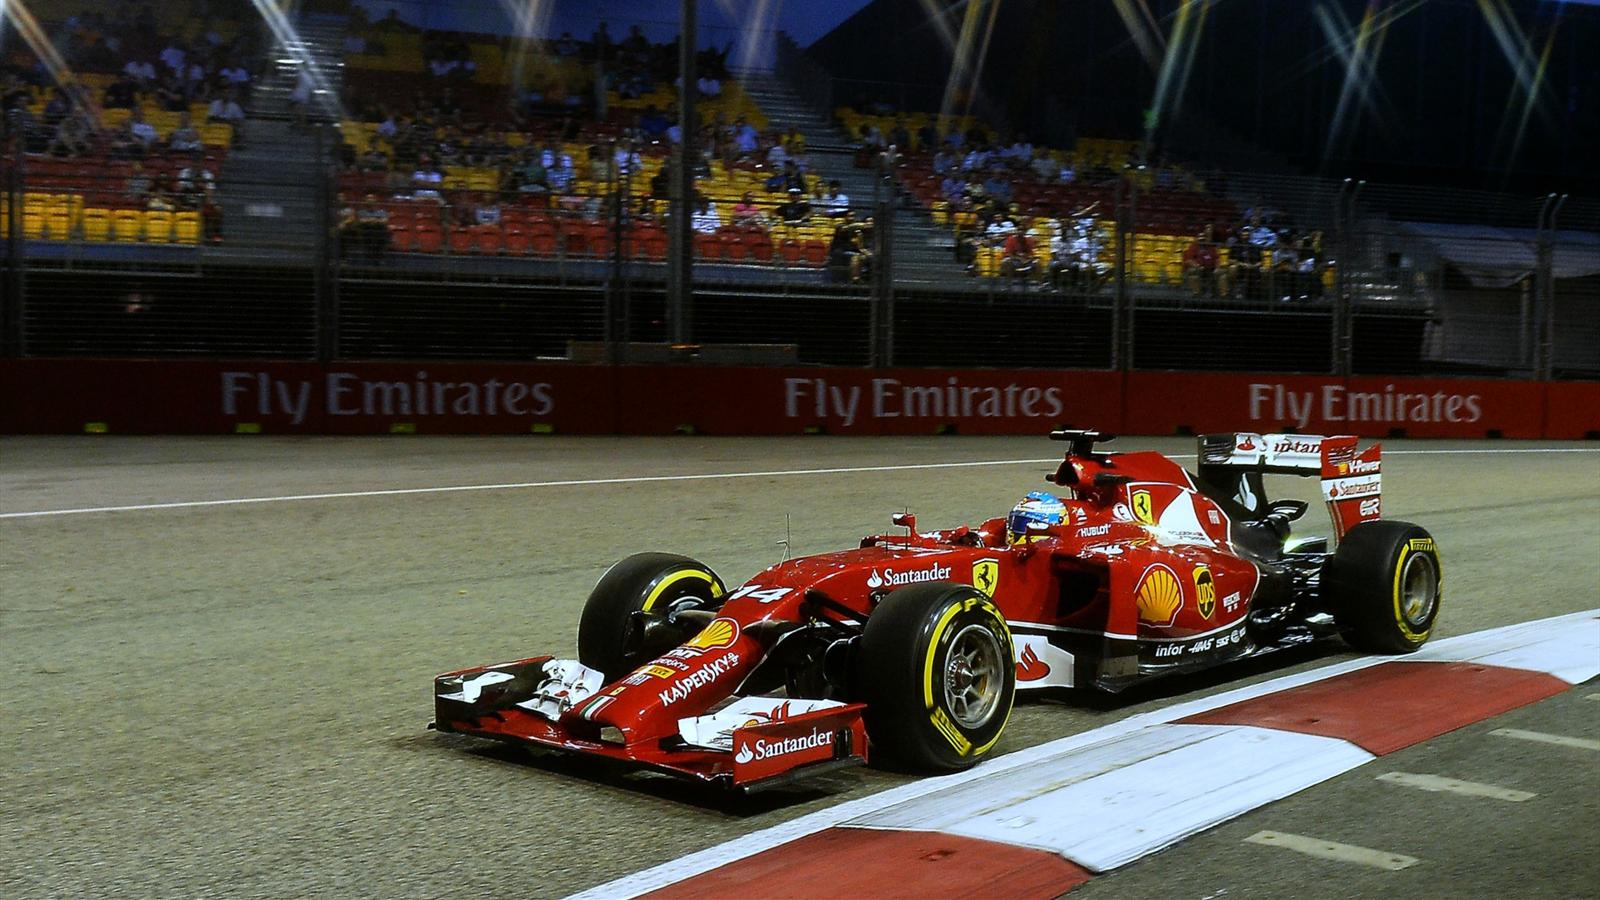 grand prix de singapour fernando alonso ferrari devant des mercedes qui cacheraient leur jeu. Black Bedroom Furniture Sets. Home Design Ideas